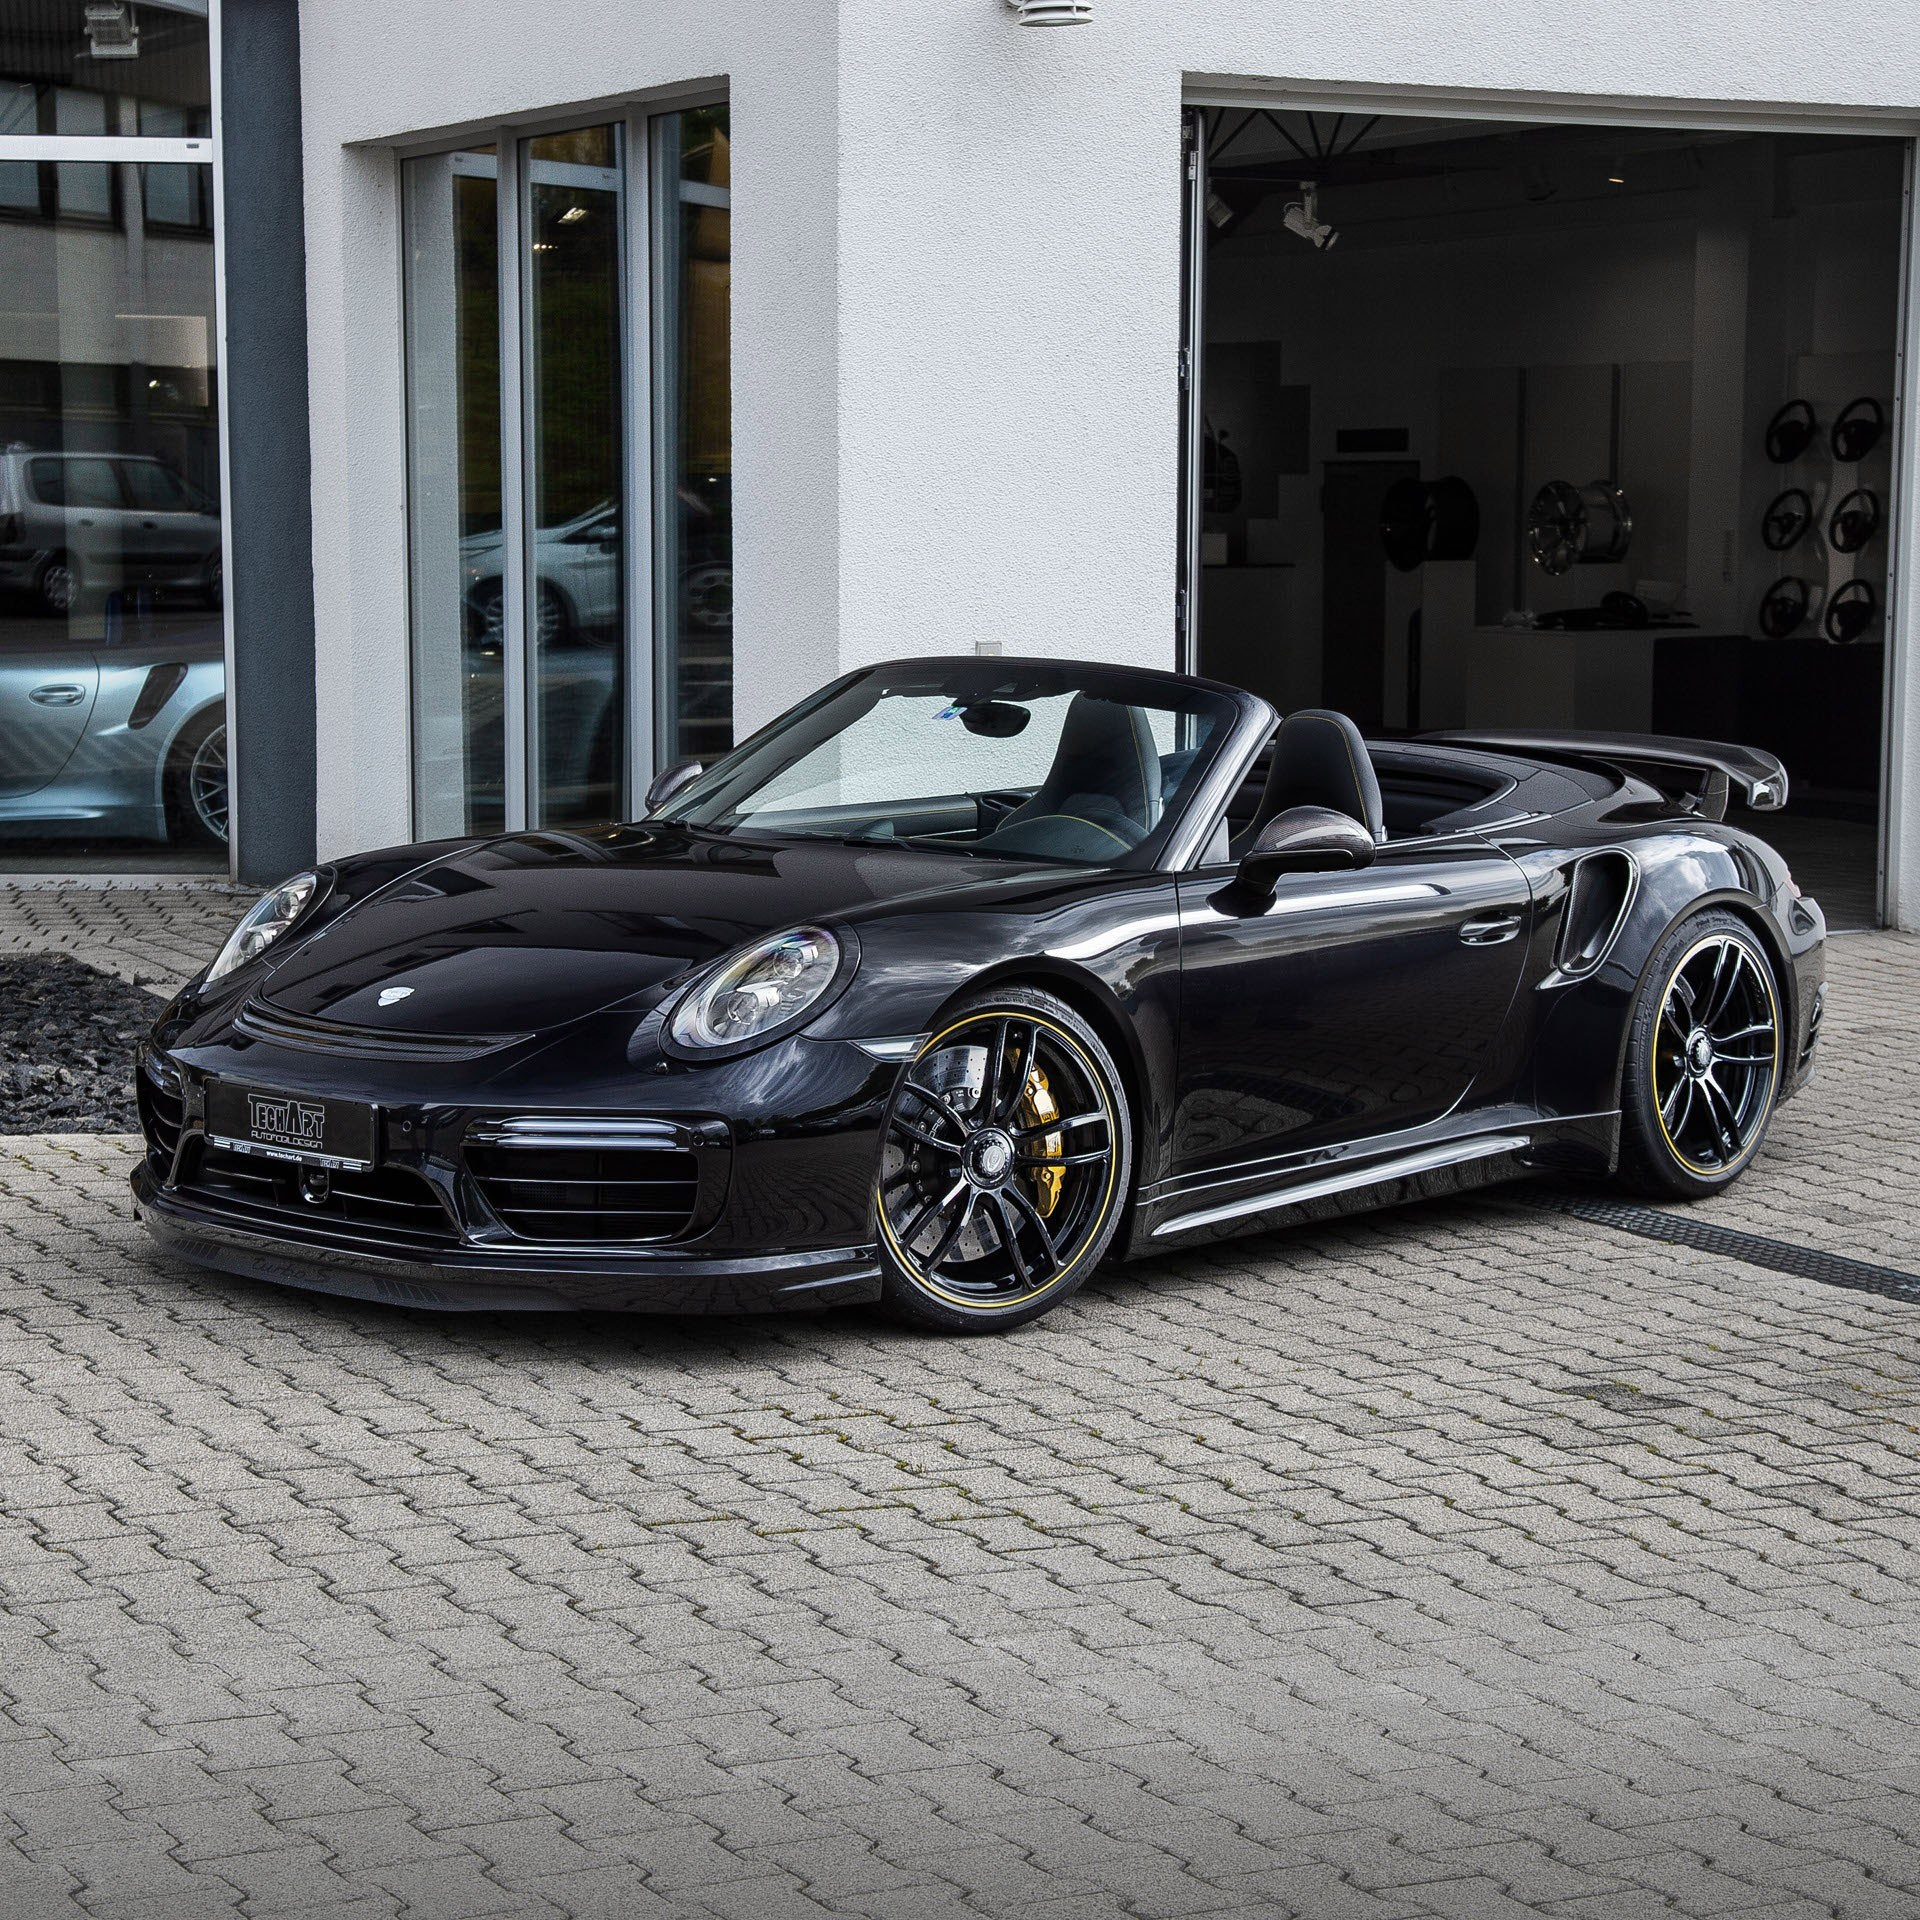 2016 Techart Porsche 911 Turbo Cabriolet 991